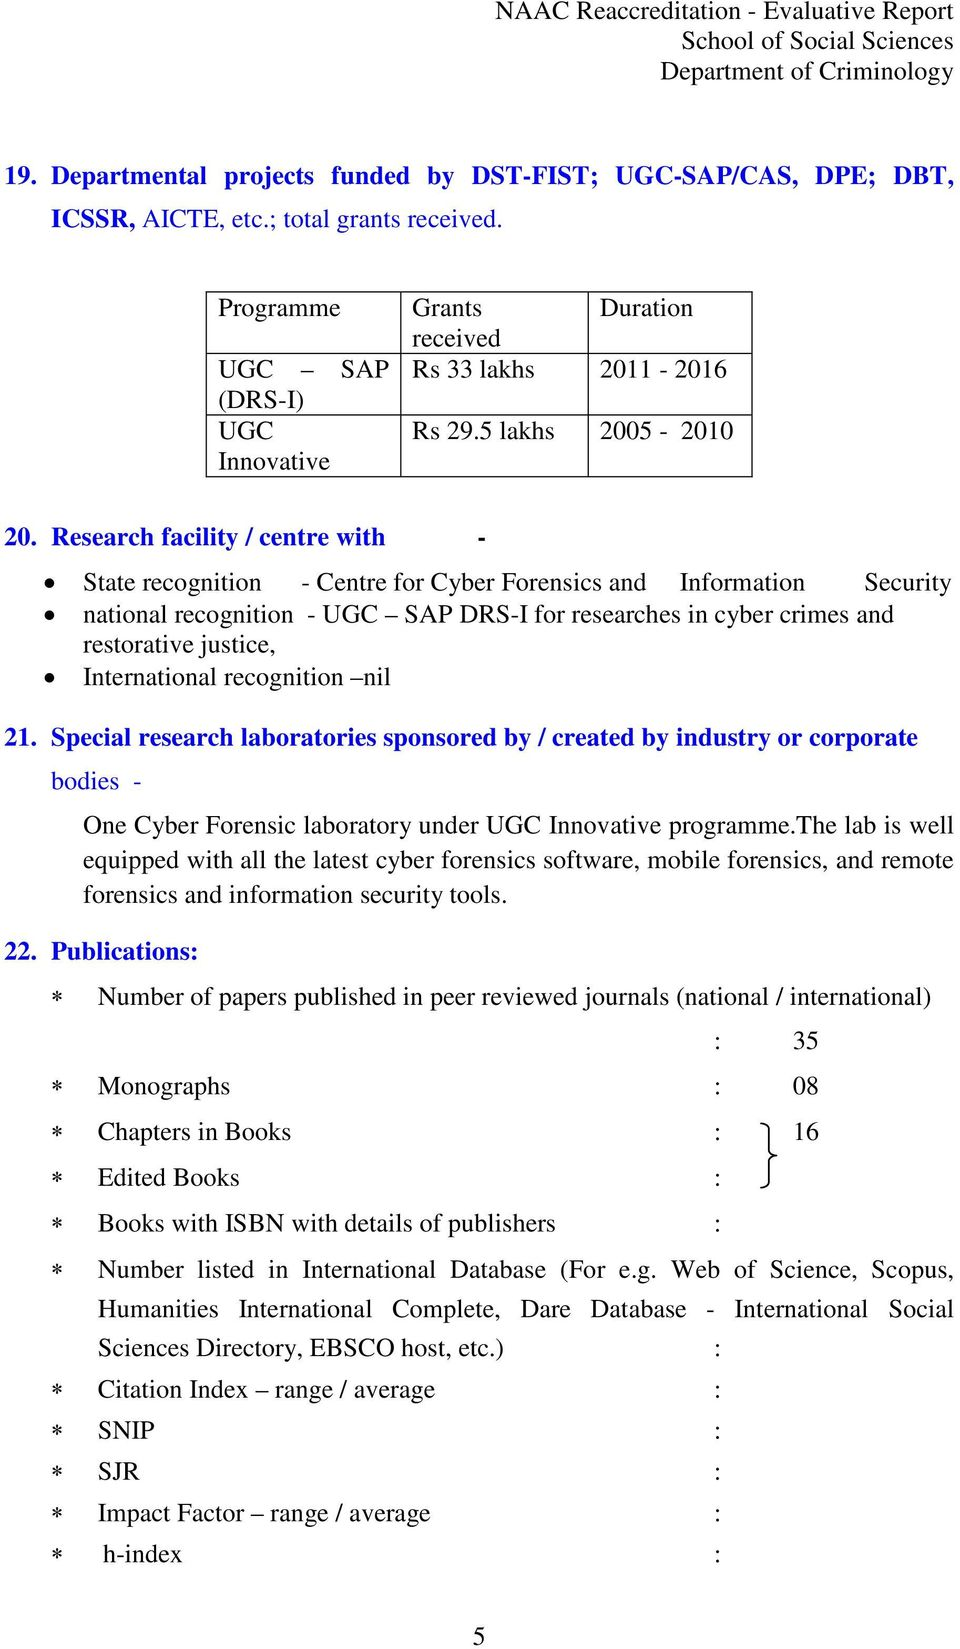 Research facility / centre with - State recognition - Centre for Cyber Forensics and Information Security national recognition - UGC SAP DRS-I for researches in cyber crimes and restorative justice,